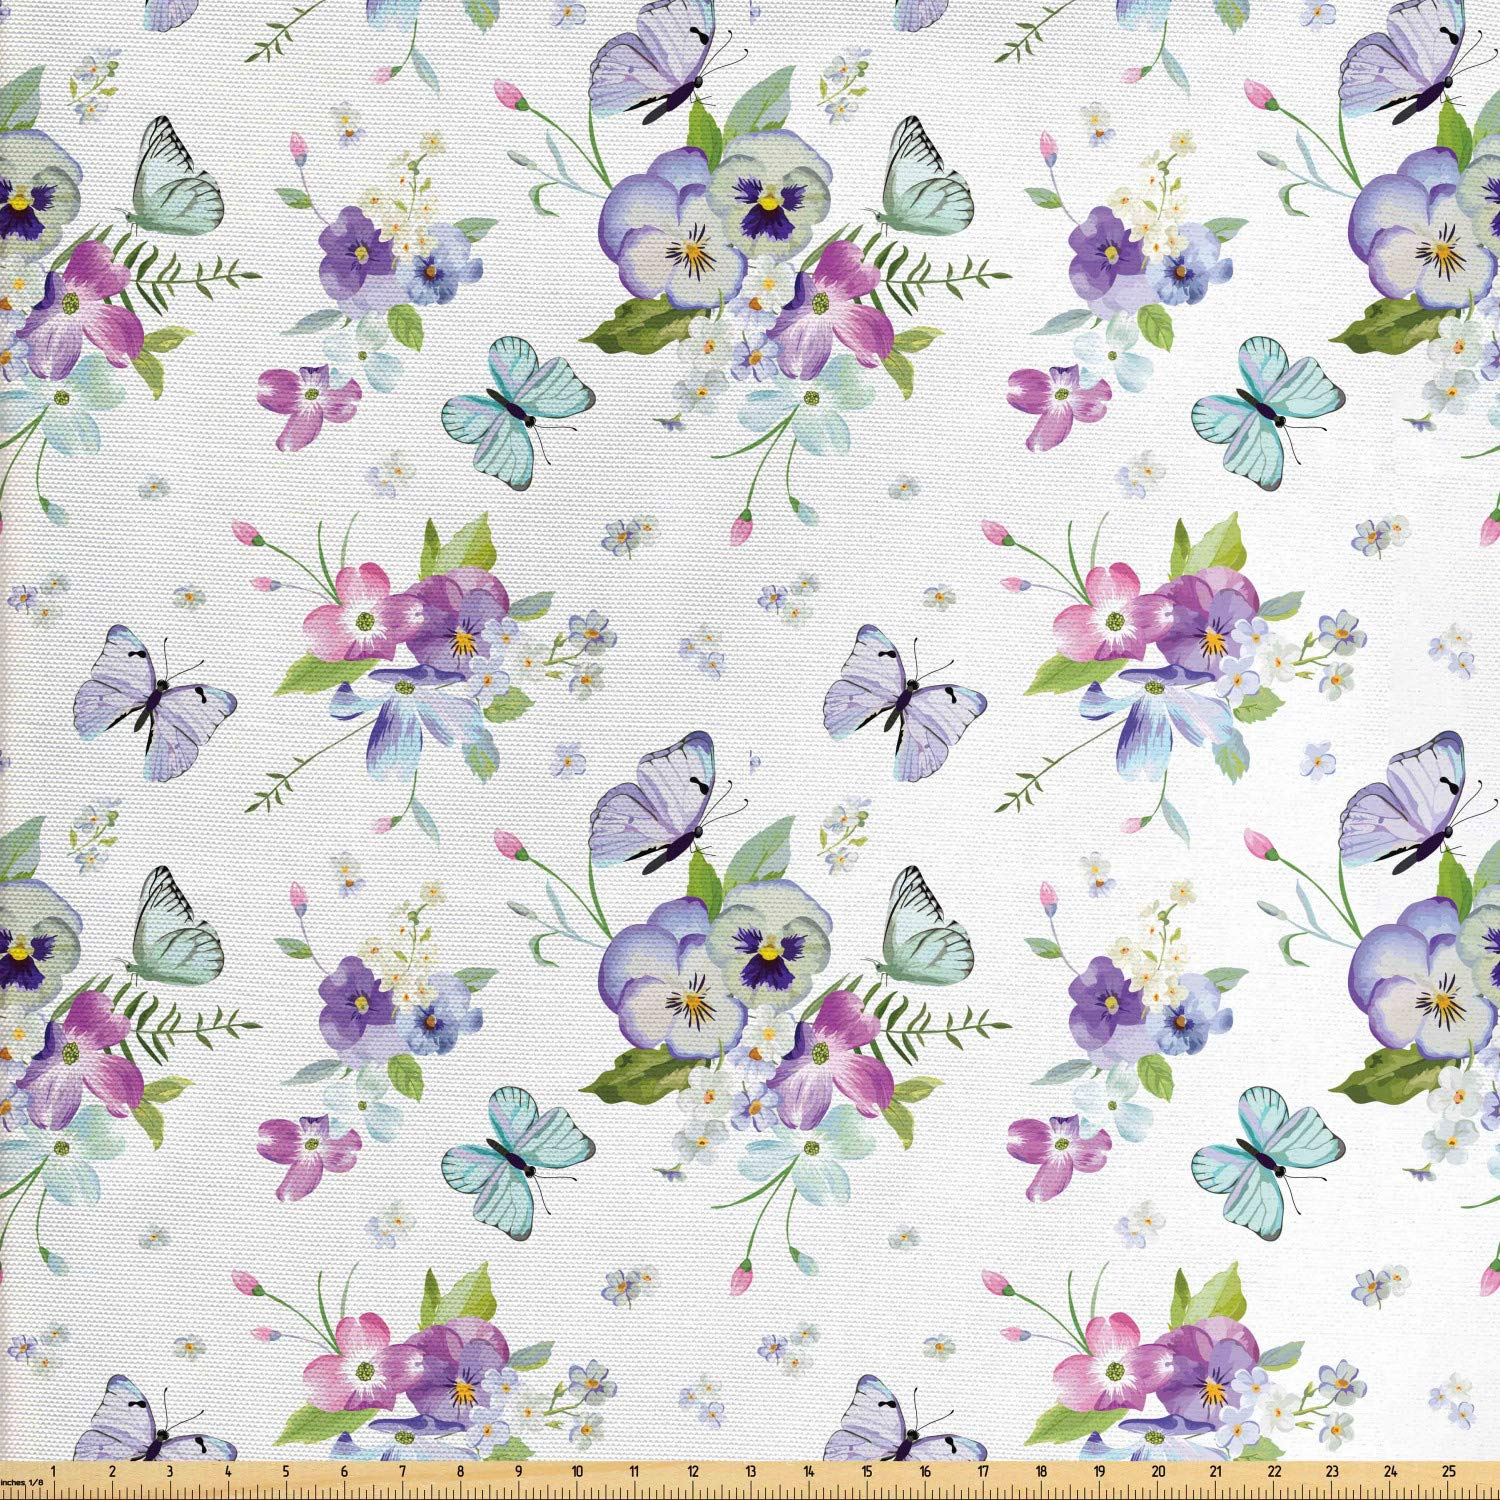 Lunarable Dogwood Flower Fabric by The Yard, Botanical Blooms with Spring Iris Peony Flying Butterflies Nature Theme, Decorative Fabric for Upholstery and Home Accents, 3 Yards, Lavender Purple by Lunarable